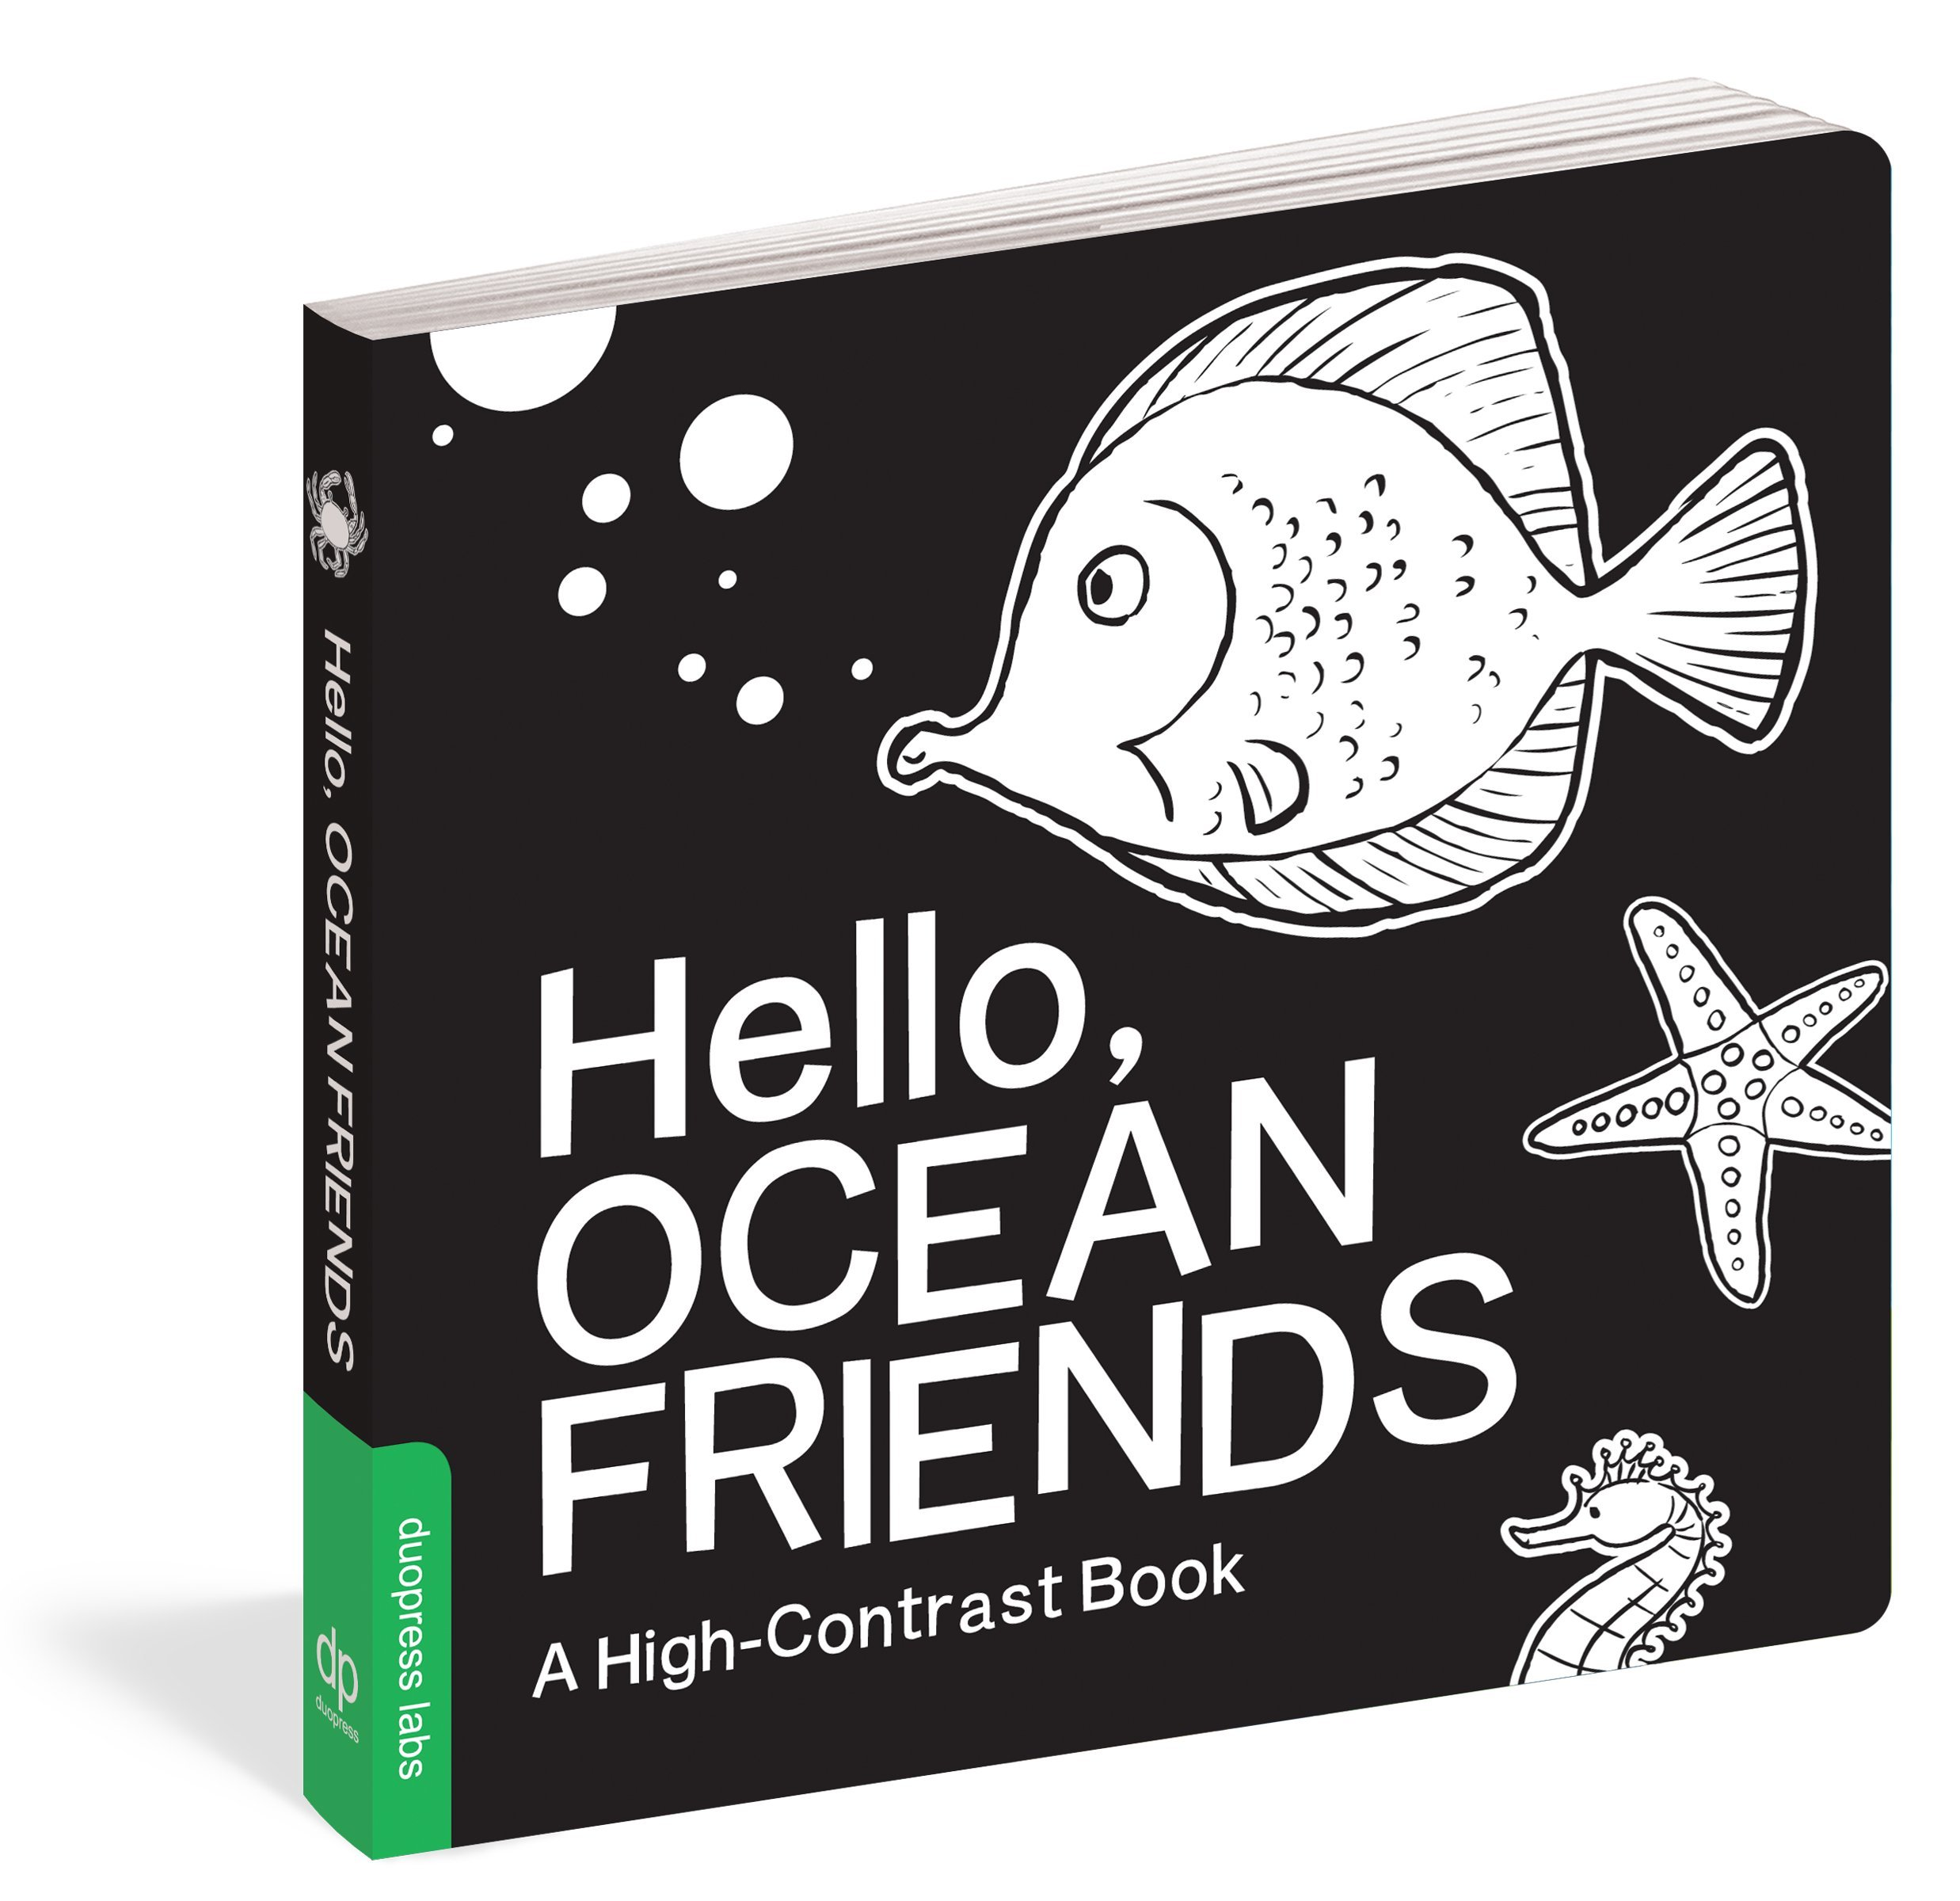 hello-ocean-friends-a-high-contrast-book